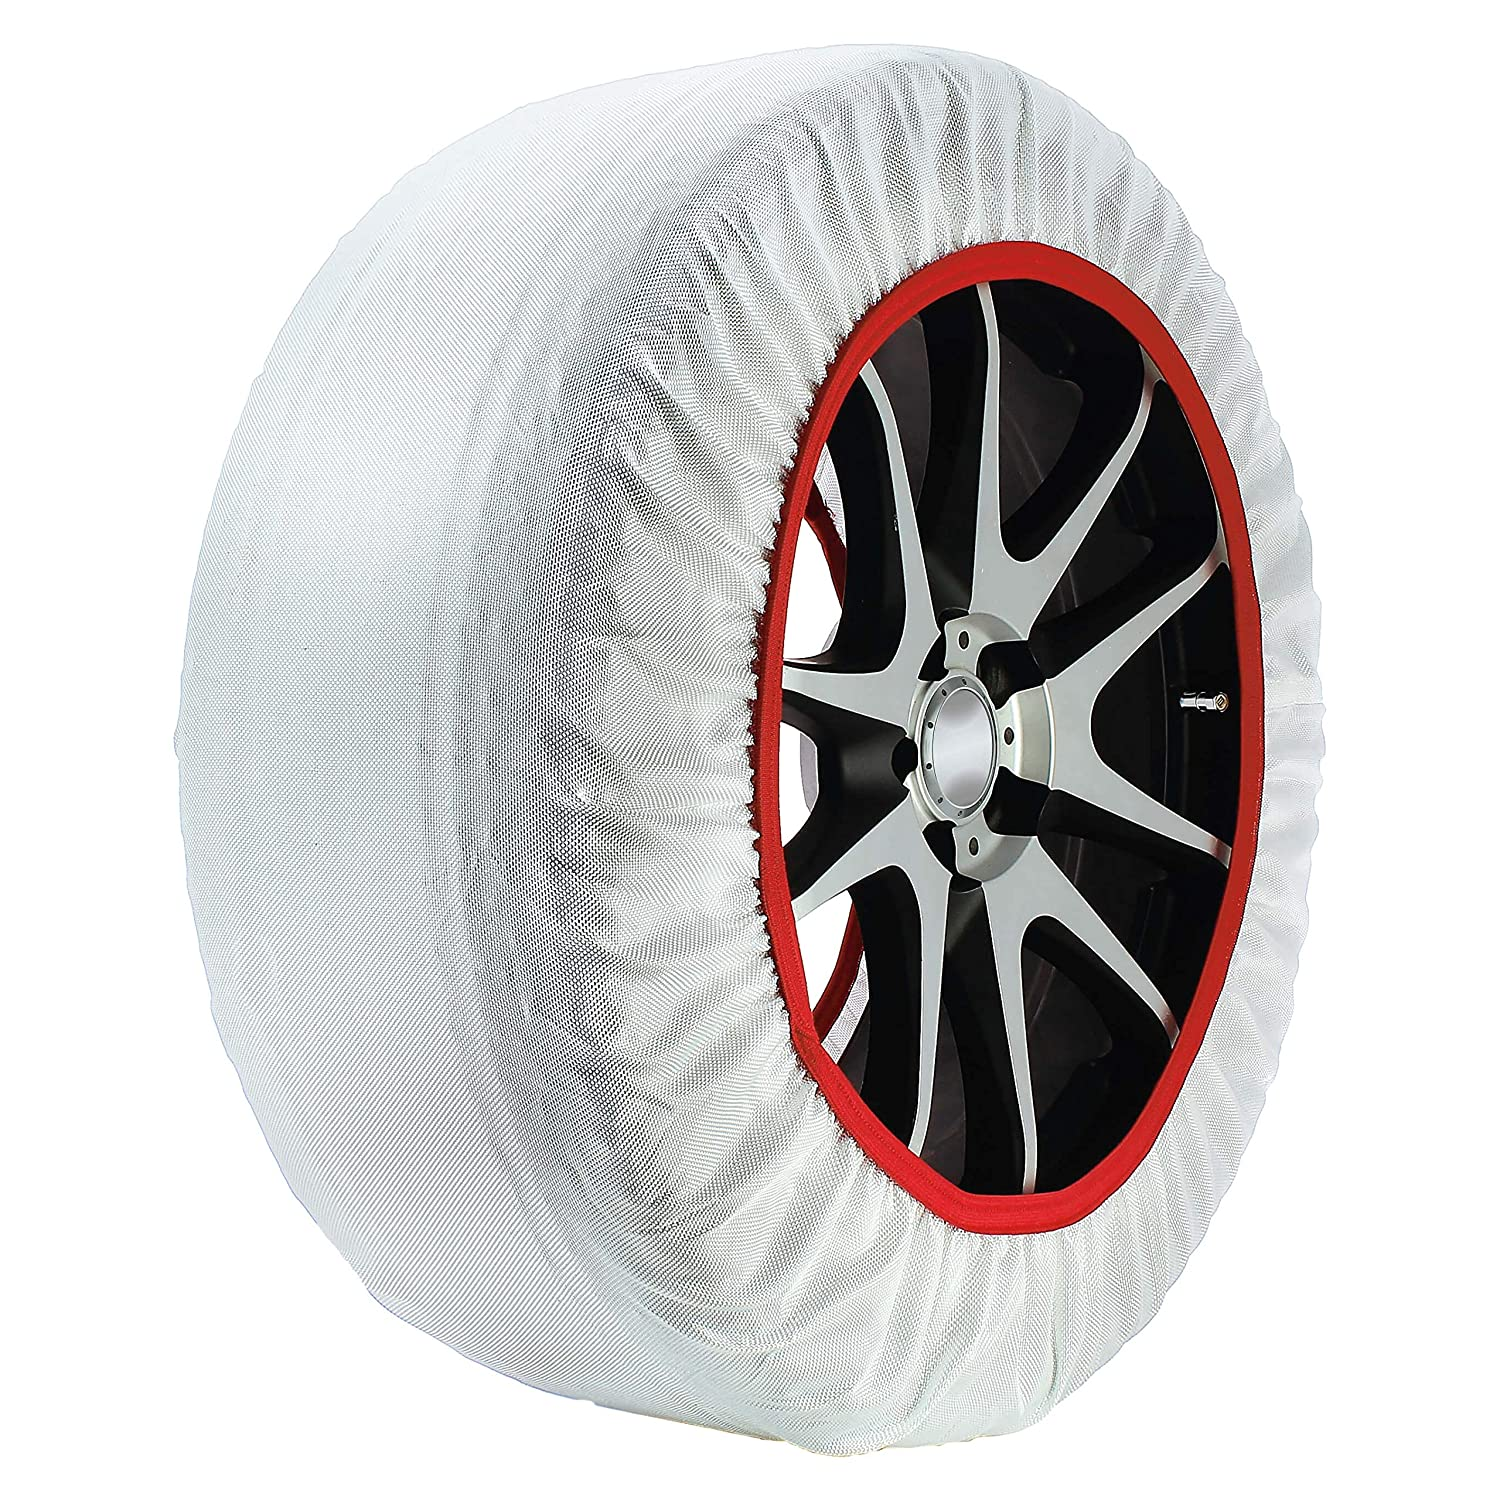 175//65 R14 Frost /& Snow Chain Socks for 14 Tyres Husky Sumex Textile Winter Car Wheel Ice